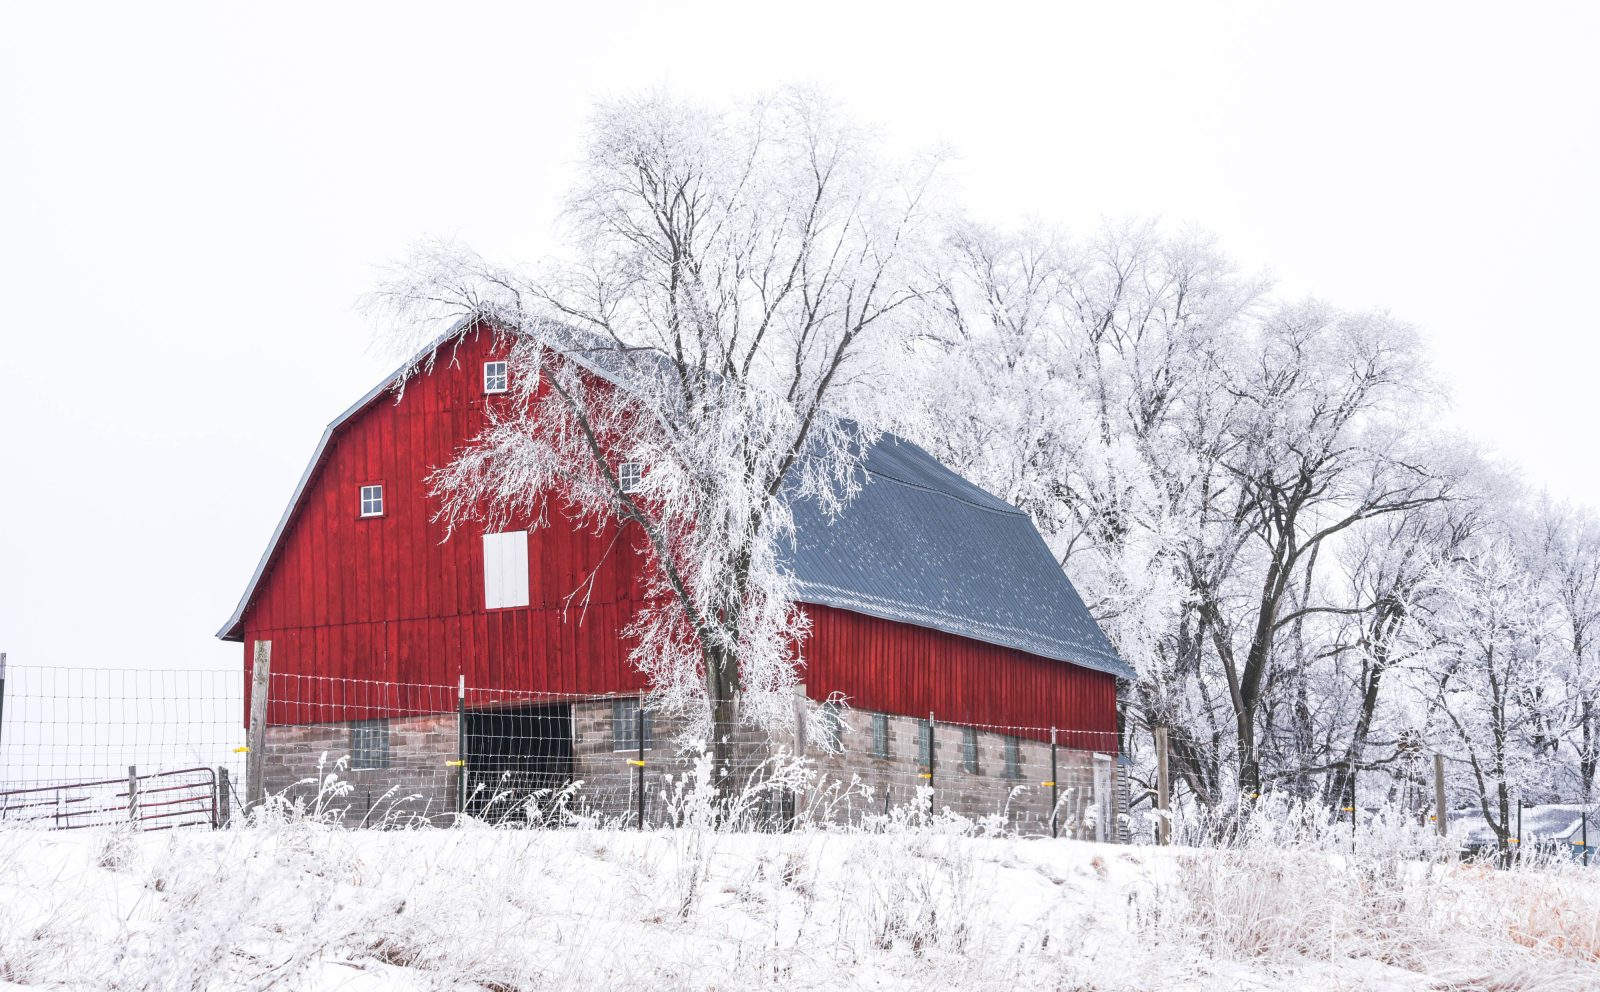 Frosty Red Barn